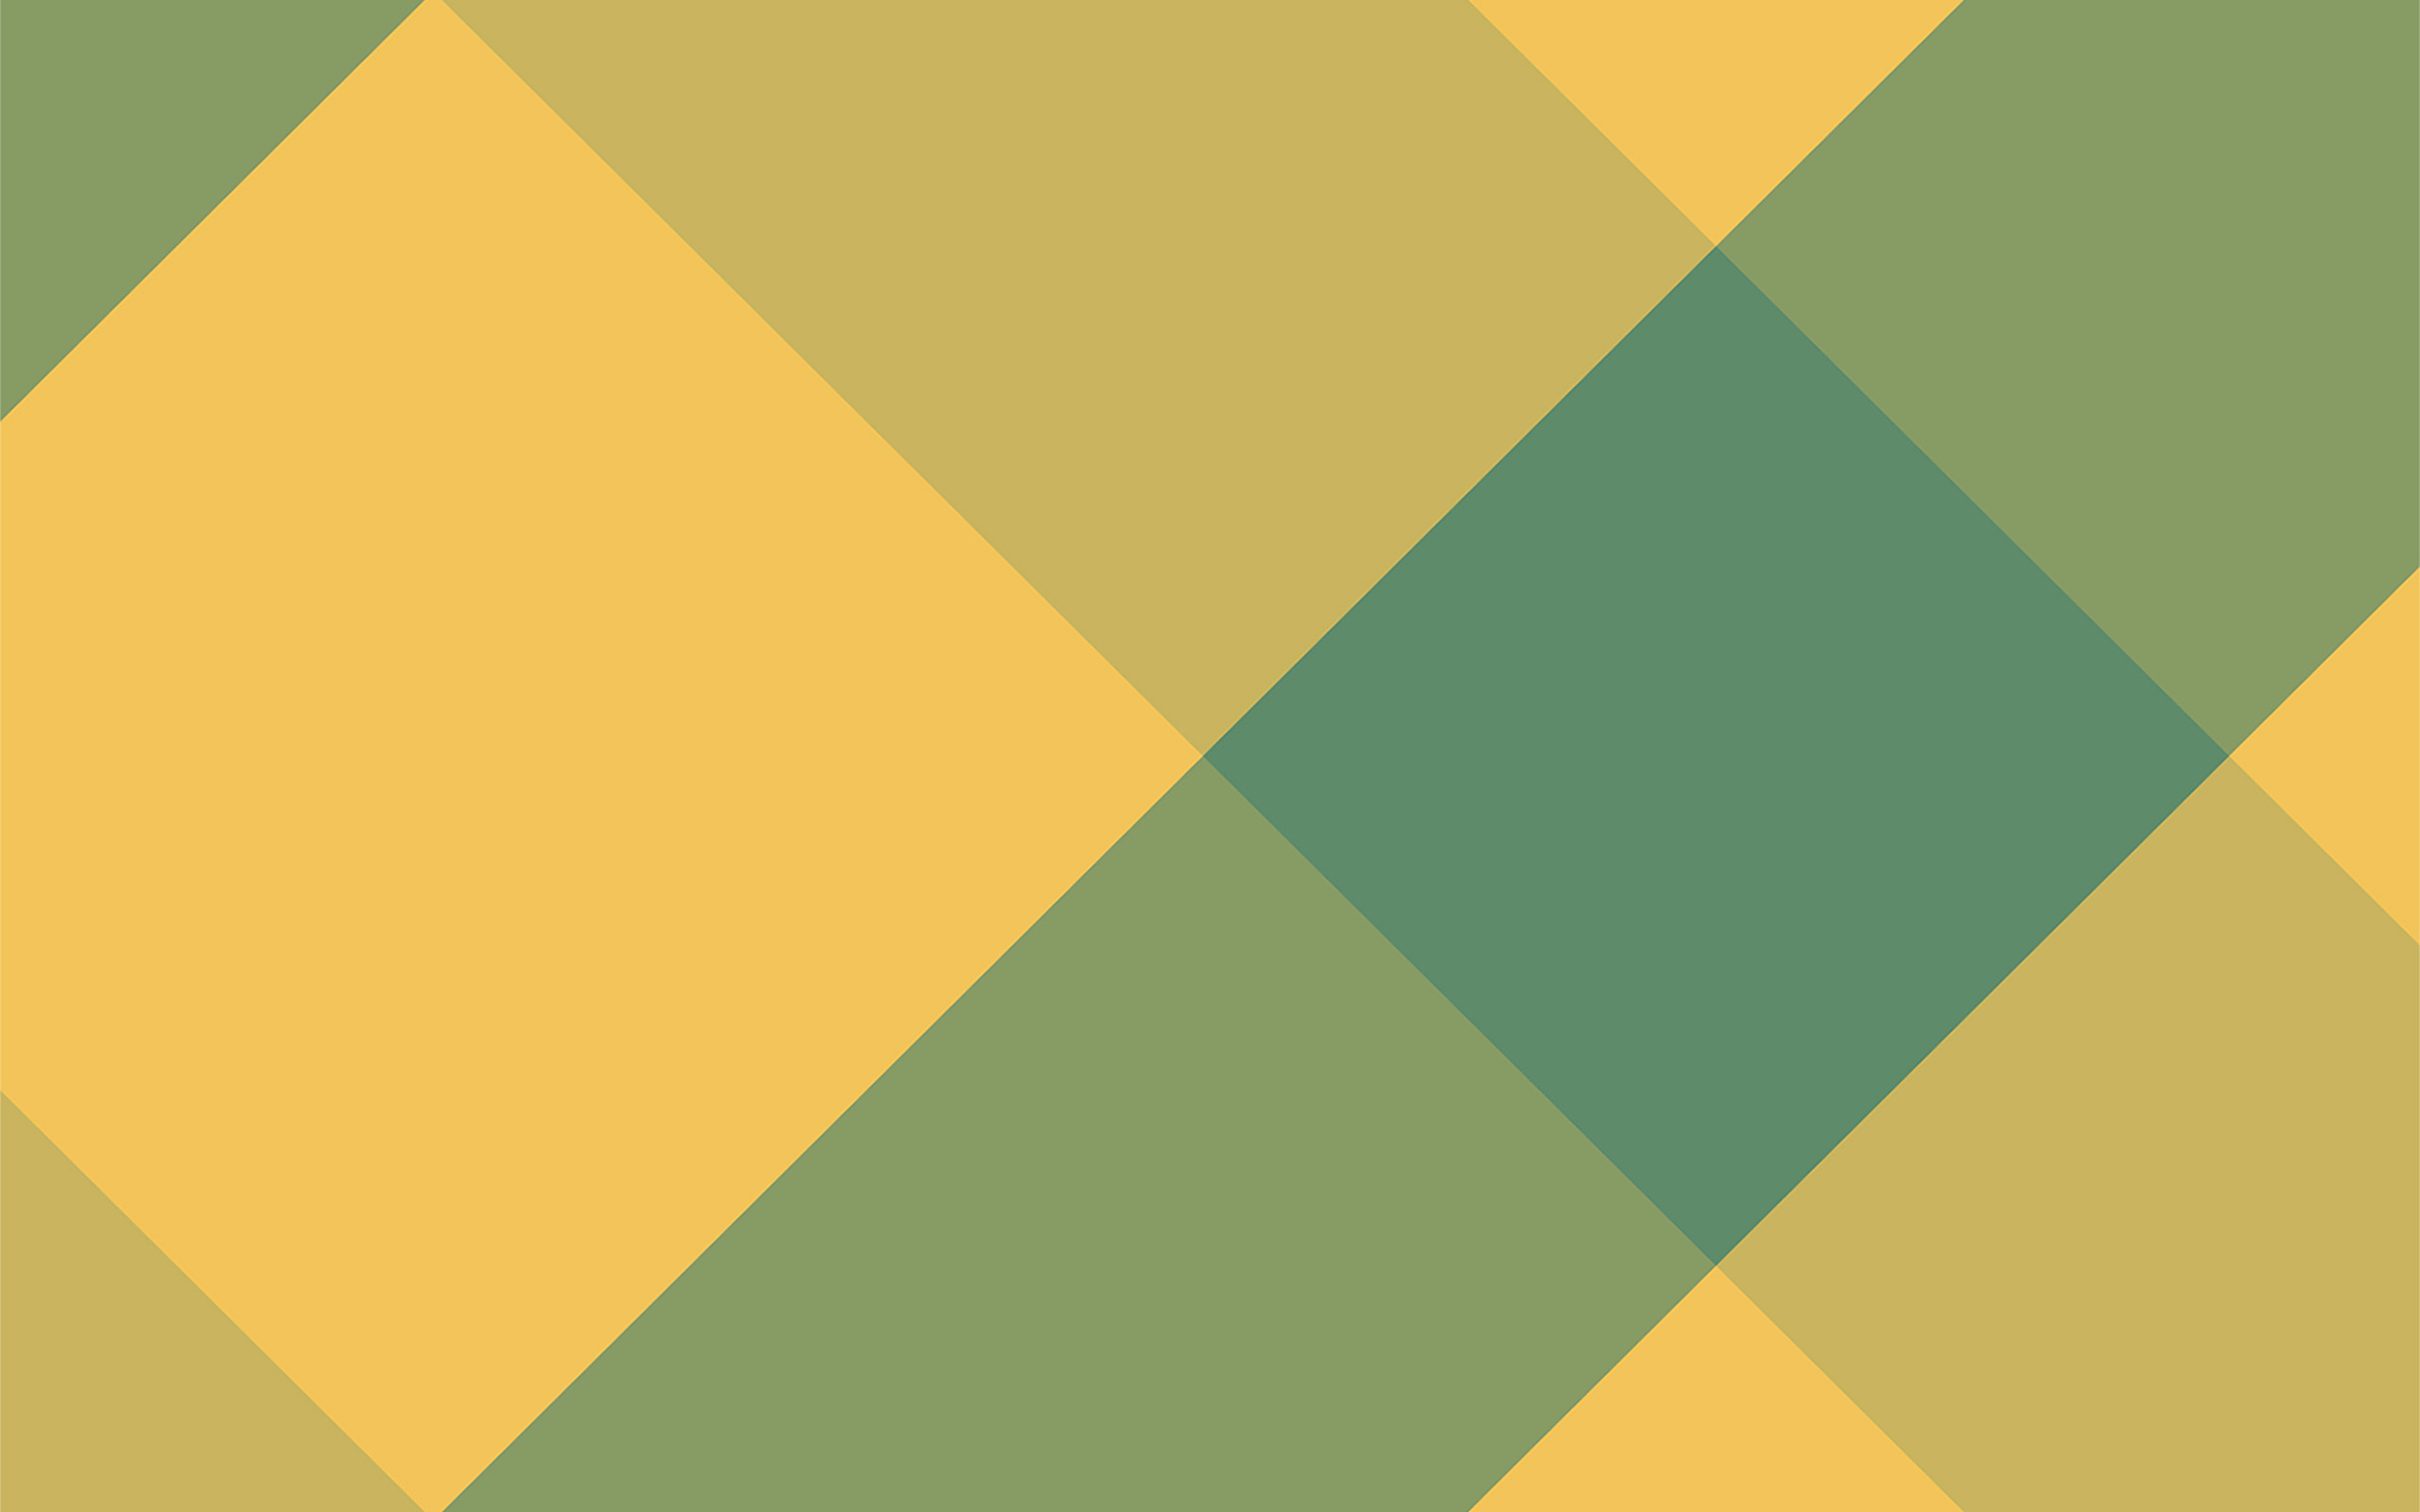 vl70-lines-green-yellow-rectangle-abstract-pattern - Papers.co